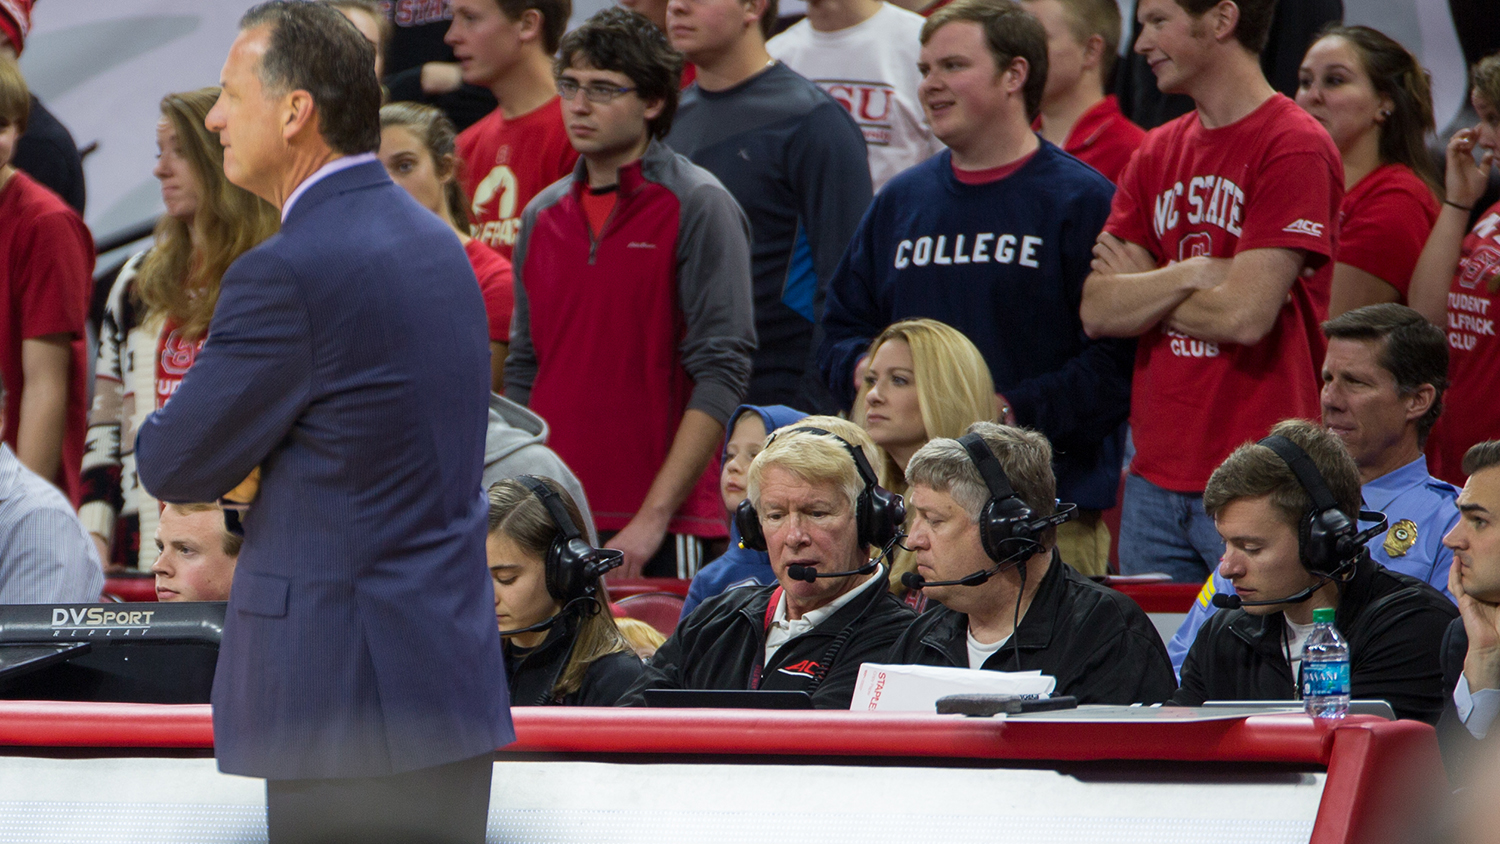 Online math instructor John Griggs coordinates game-day statistics for the NC State Men's Basketball team during a recent home game.